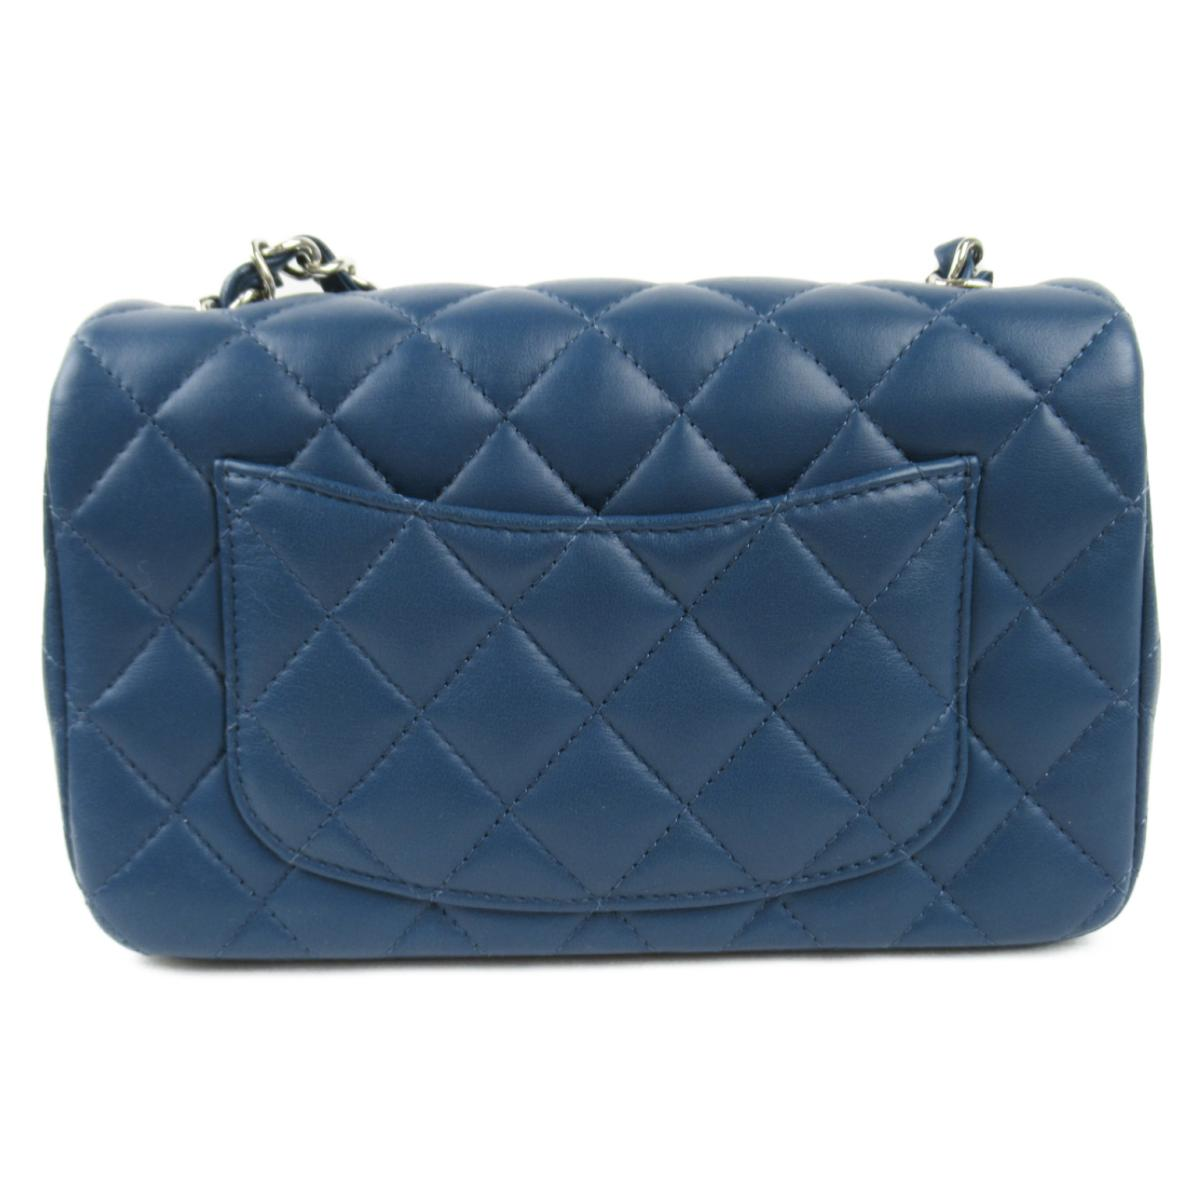 Chanel Mini Blue Bag - Iconics Preloved Luxury